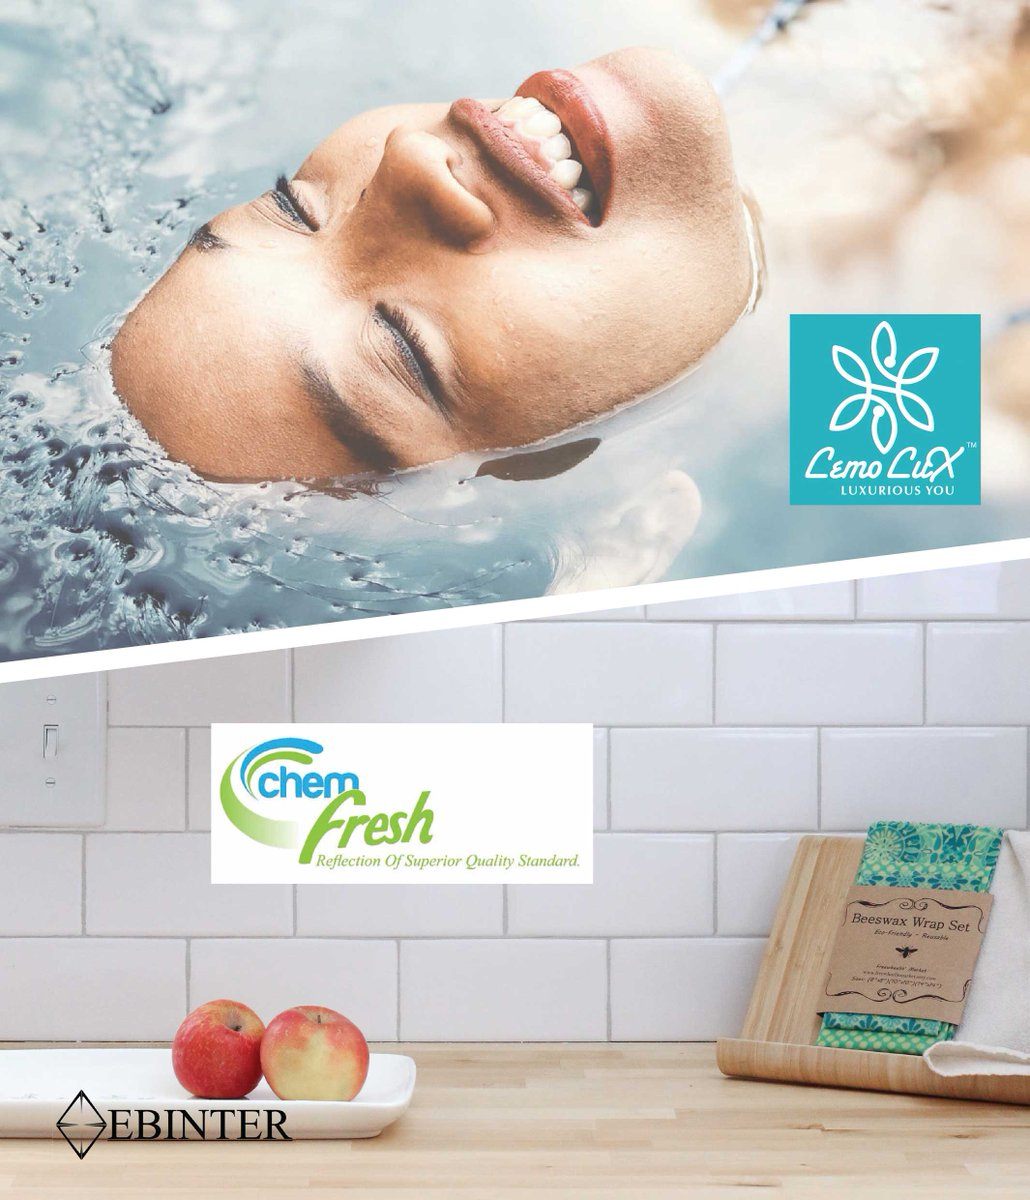 For your evening bath refresh and relaxation, Lemo Lux form bath range (Herbal, tropical & Forest) is your best product for your evening bubble treat. In the process of cleaning cooking utensils, dishes, cutlery and other items. chem fresh dish wash liquid is your trusted brand. https://t.co/xzs67KuGWy